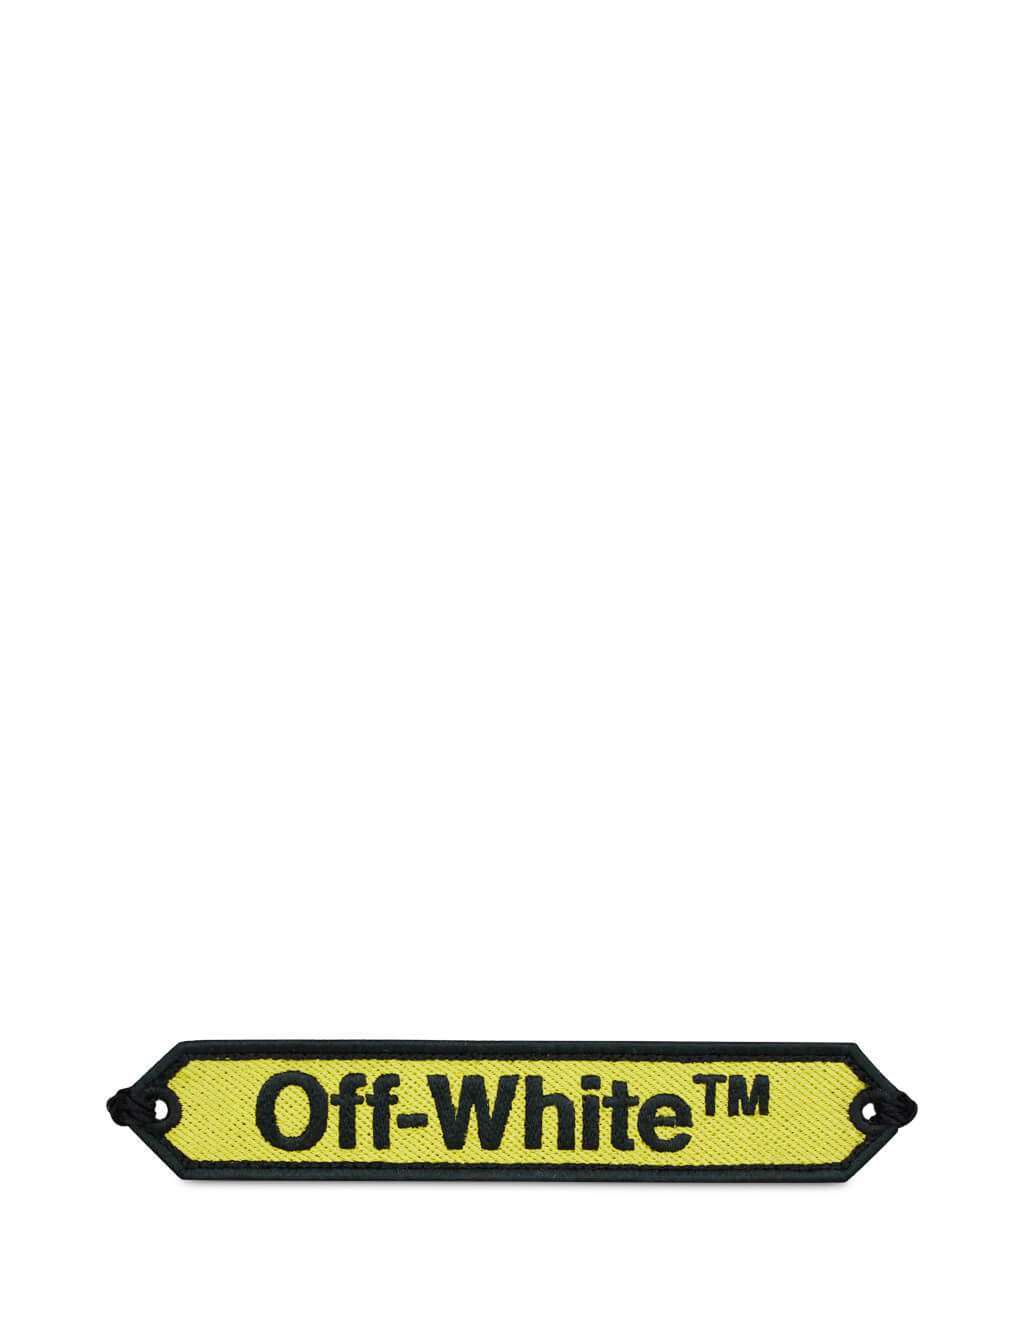 Off-White Women's Yellow and Black Macrame Bracelet OWOA008R20D240856010